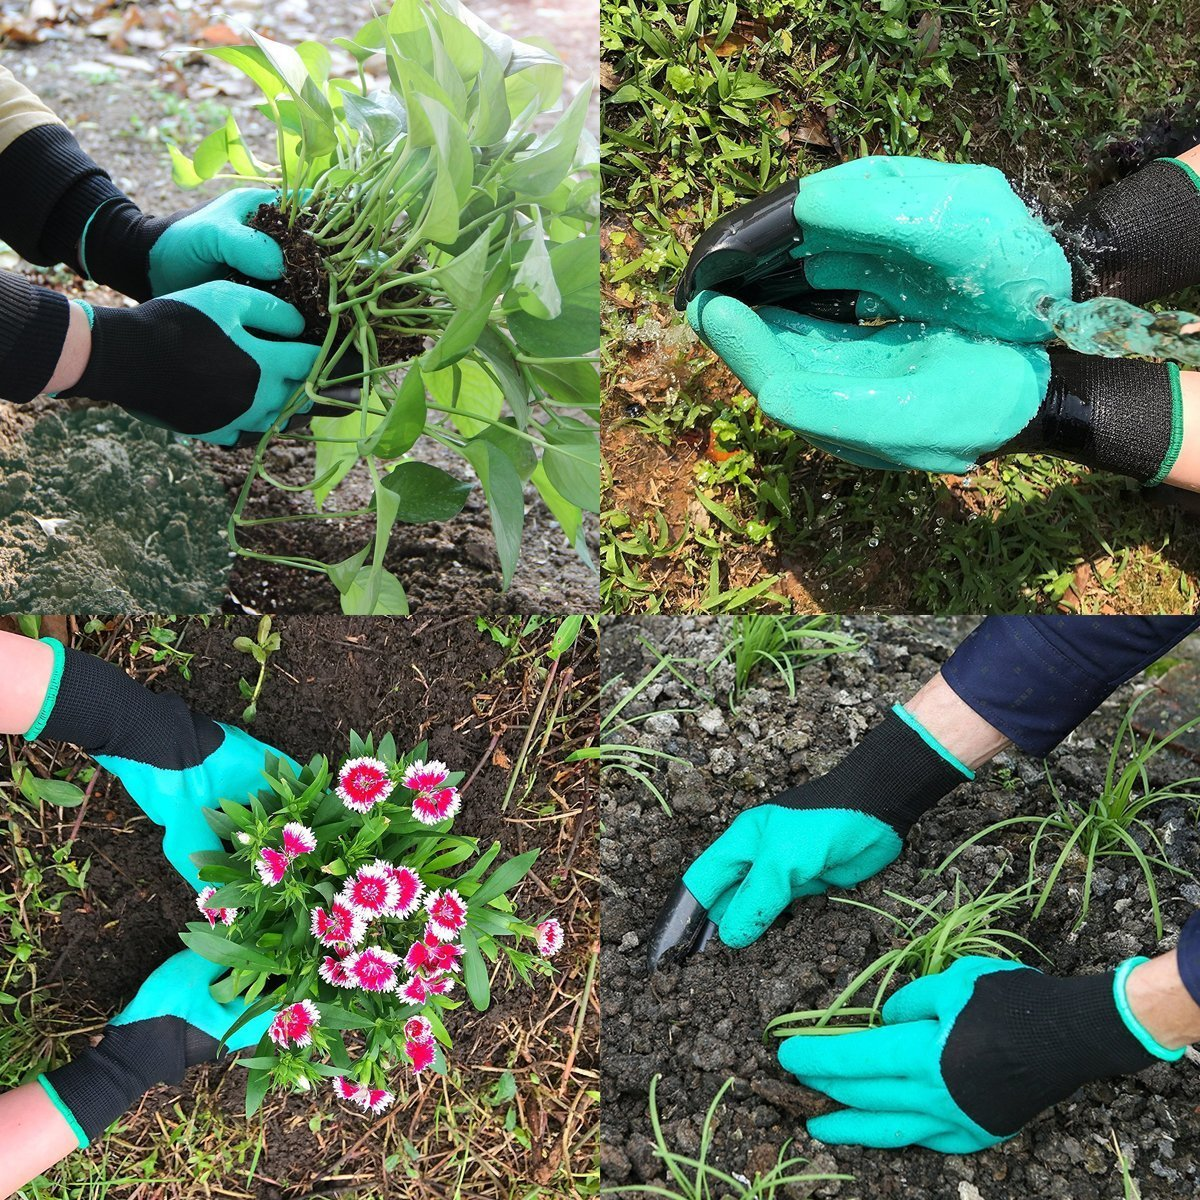 HmiL-U Garden Tool Sets 9 piece Gardening tool with Plant Tie- Garden Tote and Garden Gloves and more Christmas gifts for your parents. by HmiL-U (Image #6)